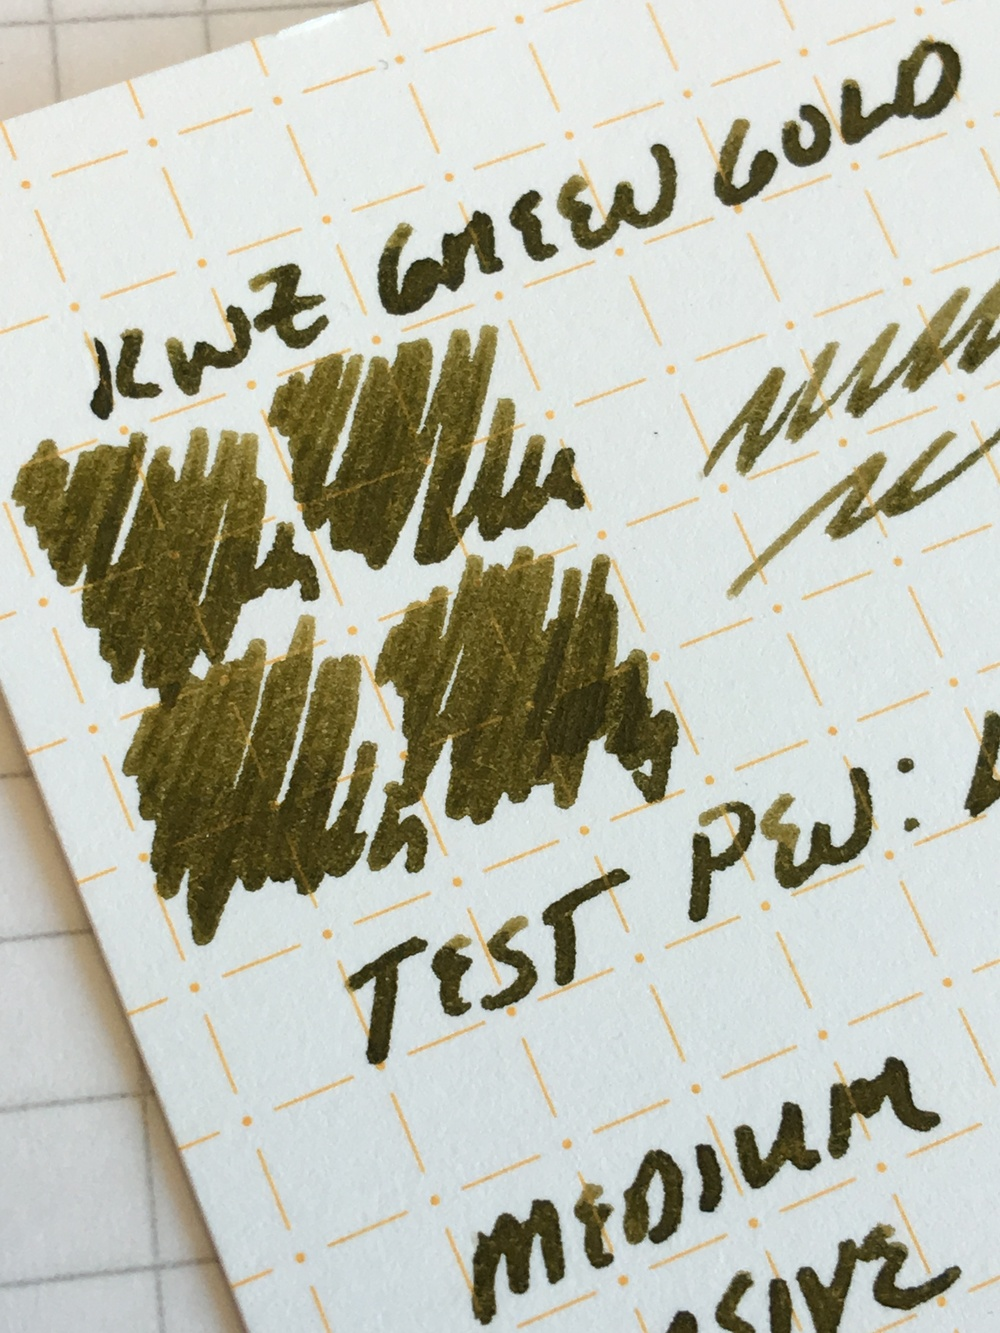 KWZ Green Gold, in a Lamy 2000 Stainless Steel medium cursive italic ground by Mark Bacas.